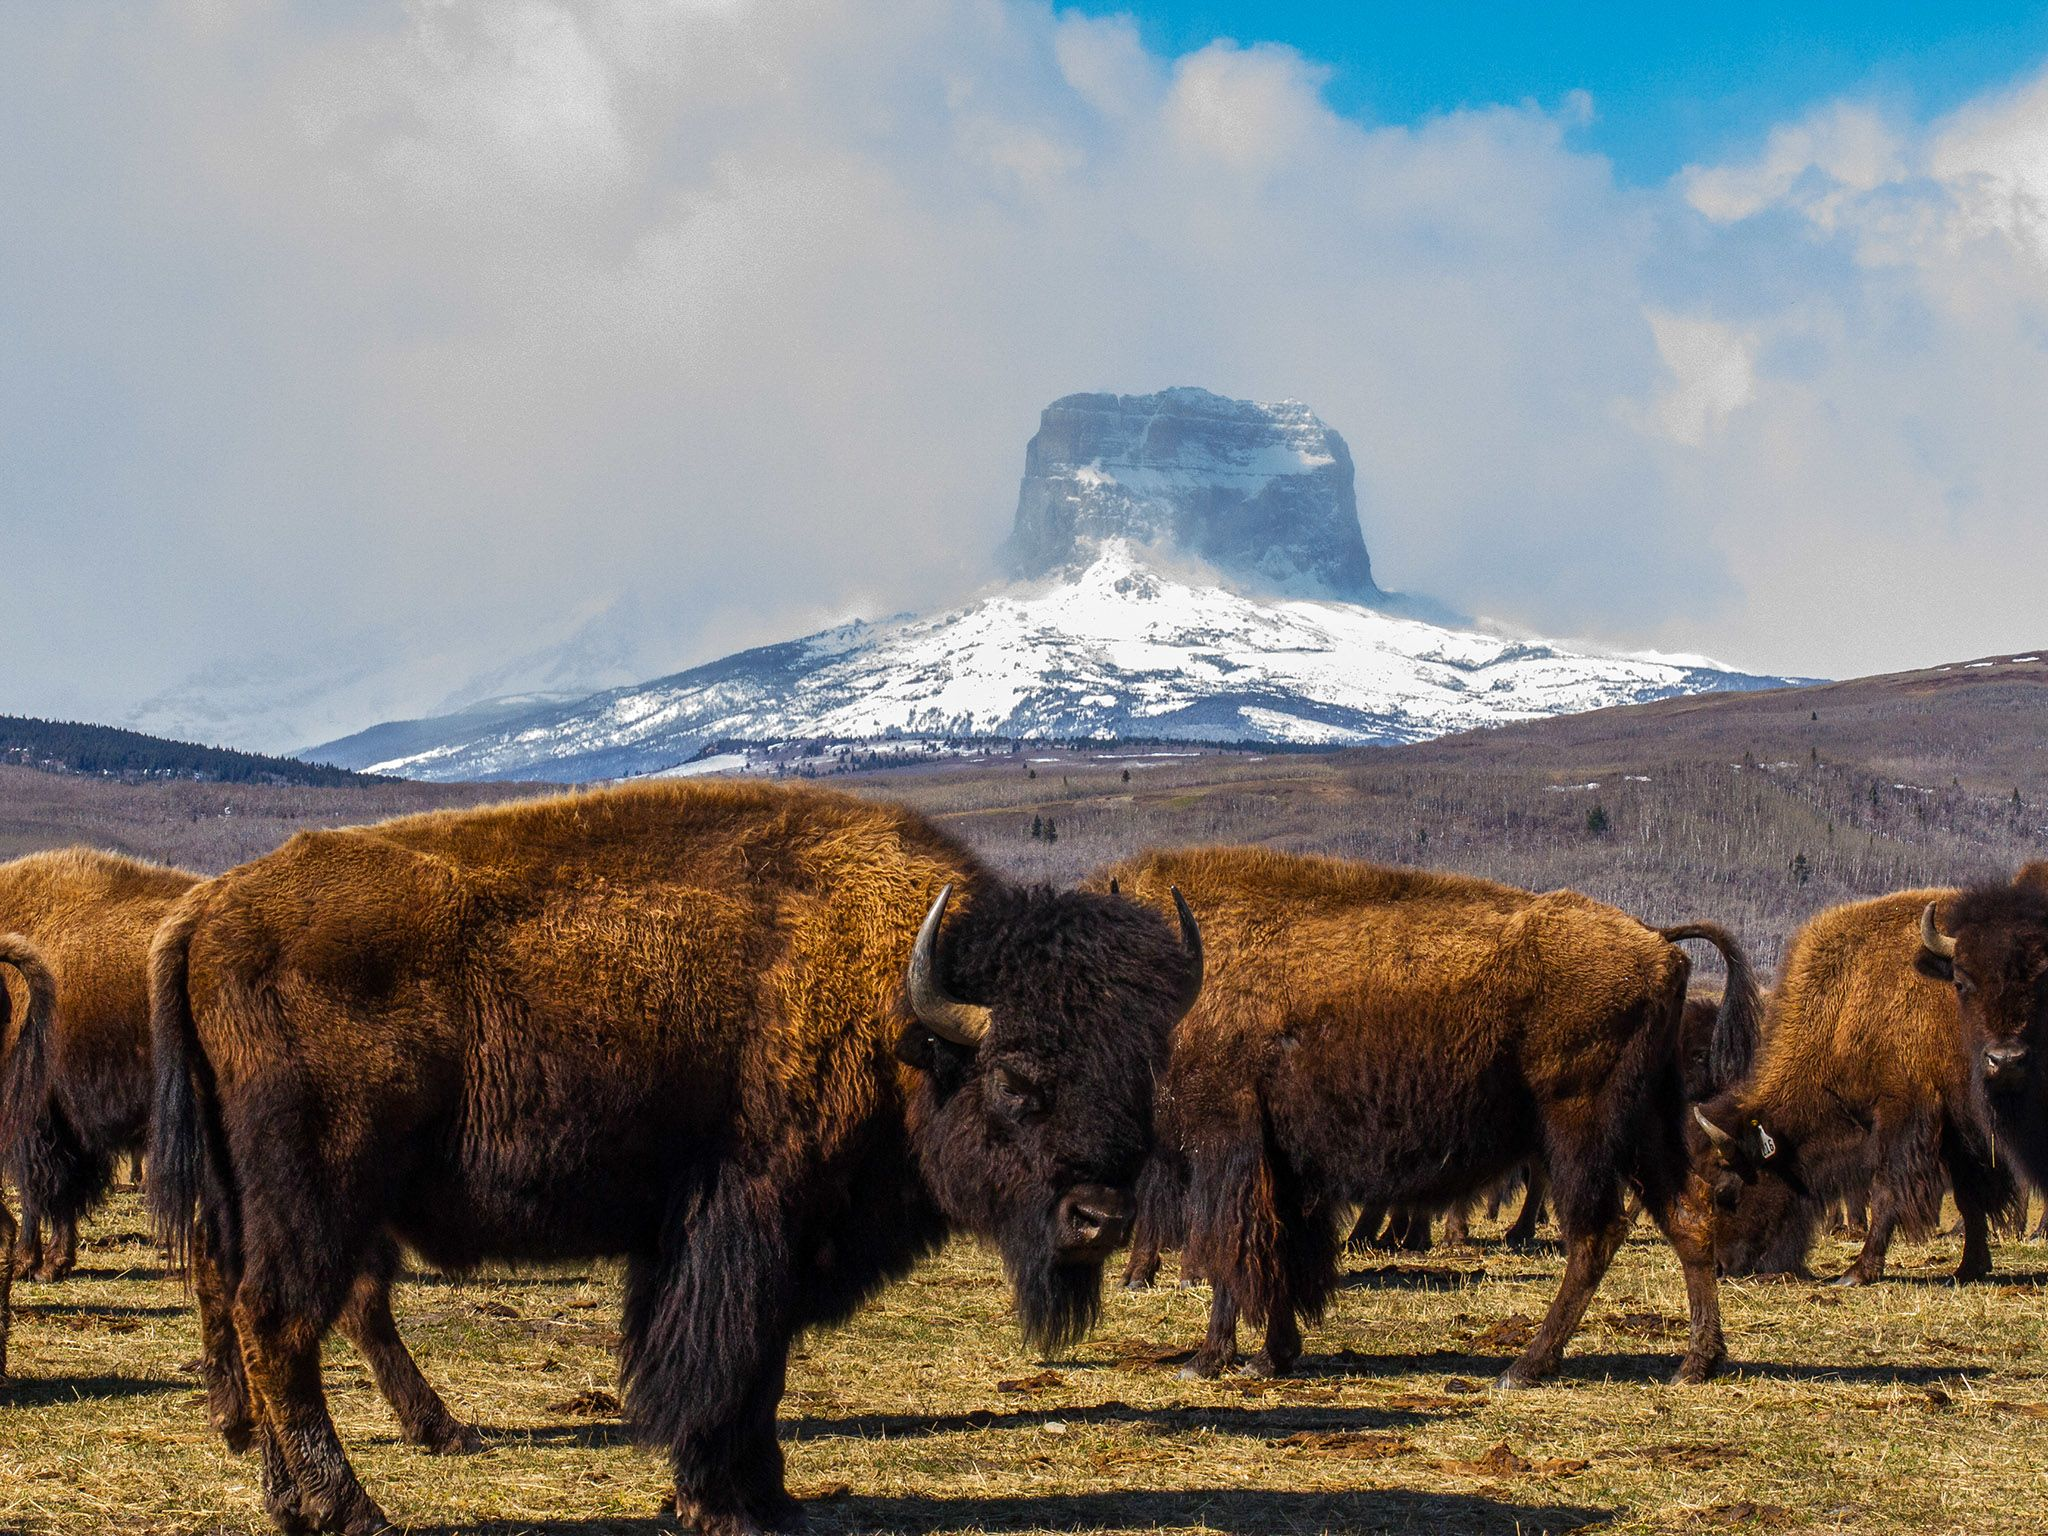 Buffalo herd in front of Castle Mountain. This image is from Wild Canada. [Фото дня - Октябрь 2014]